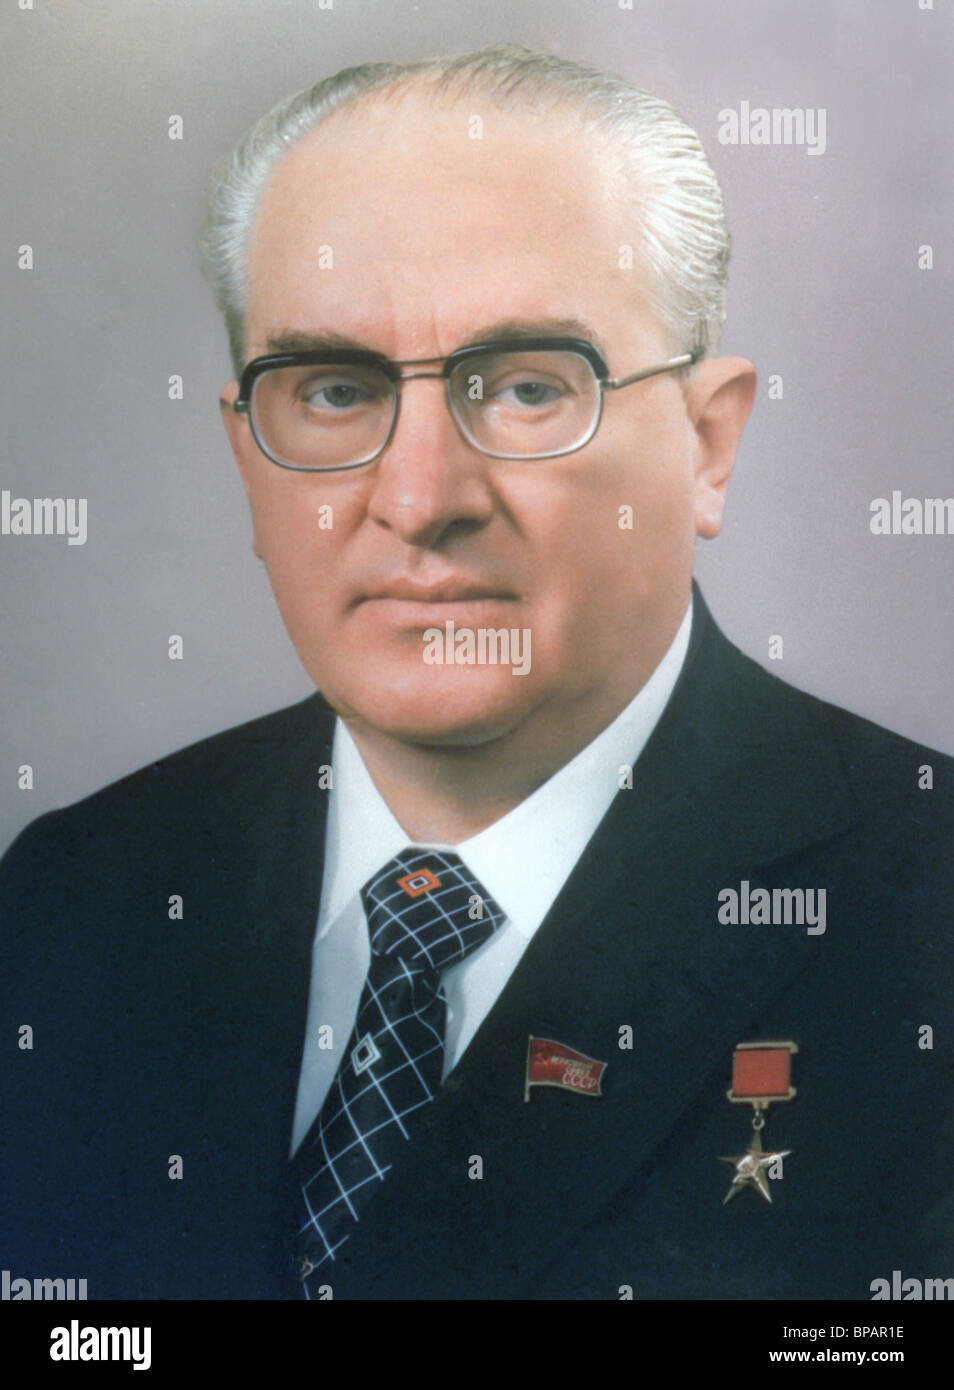 General Secretary of the CPSU Yuri Andropov, 1982 - Stock Image